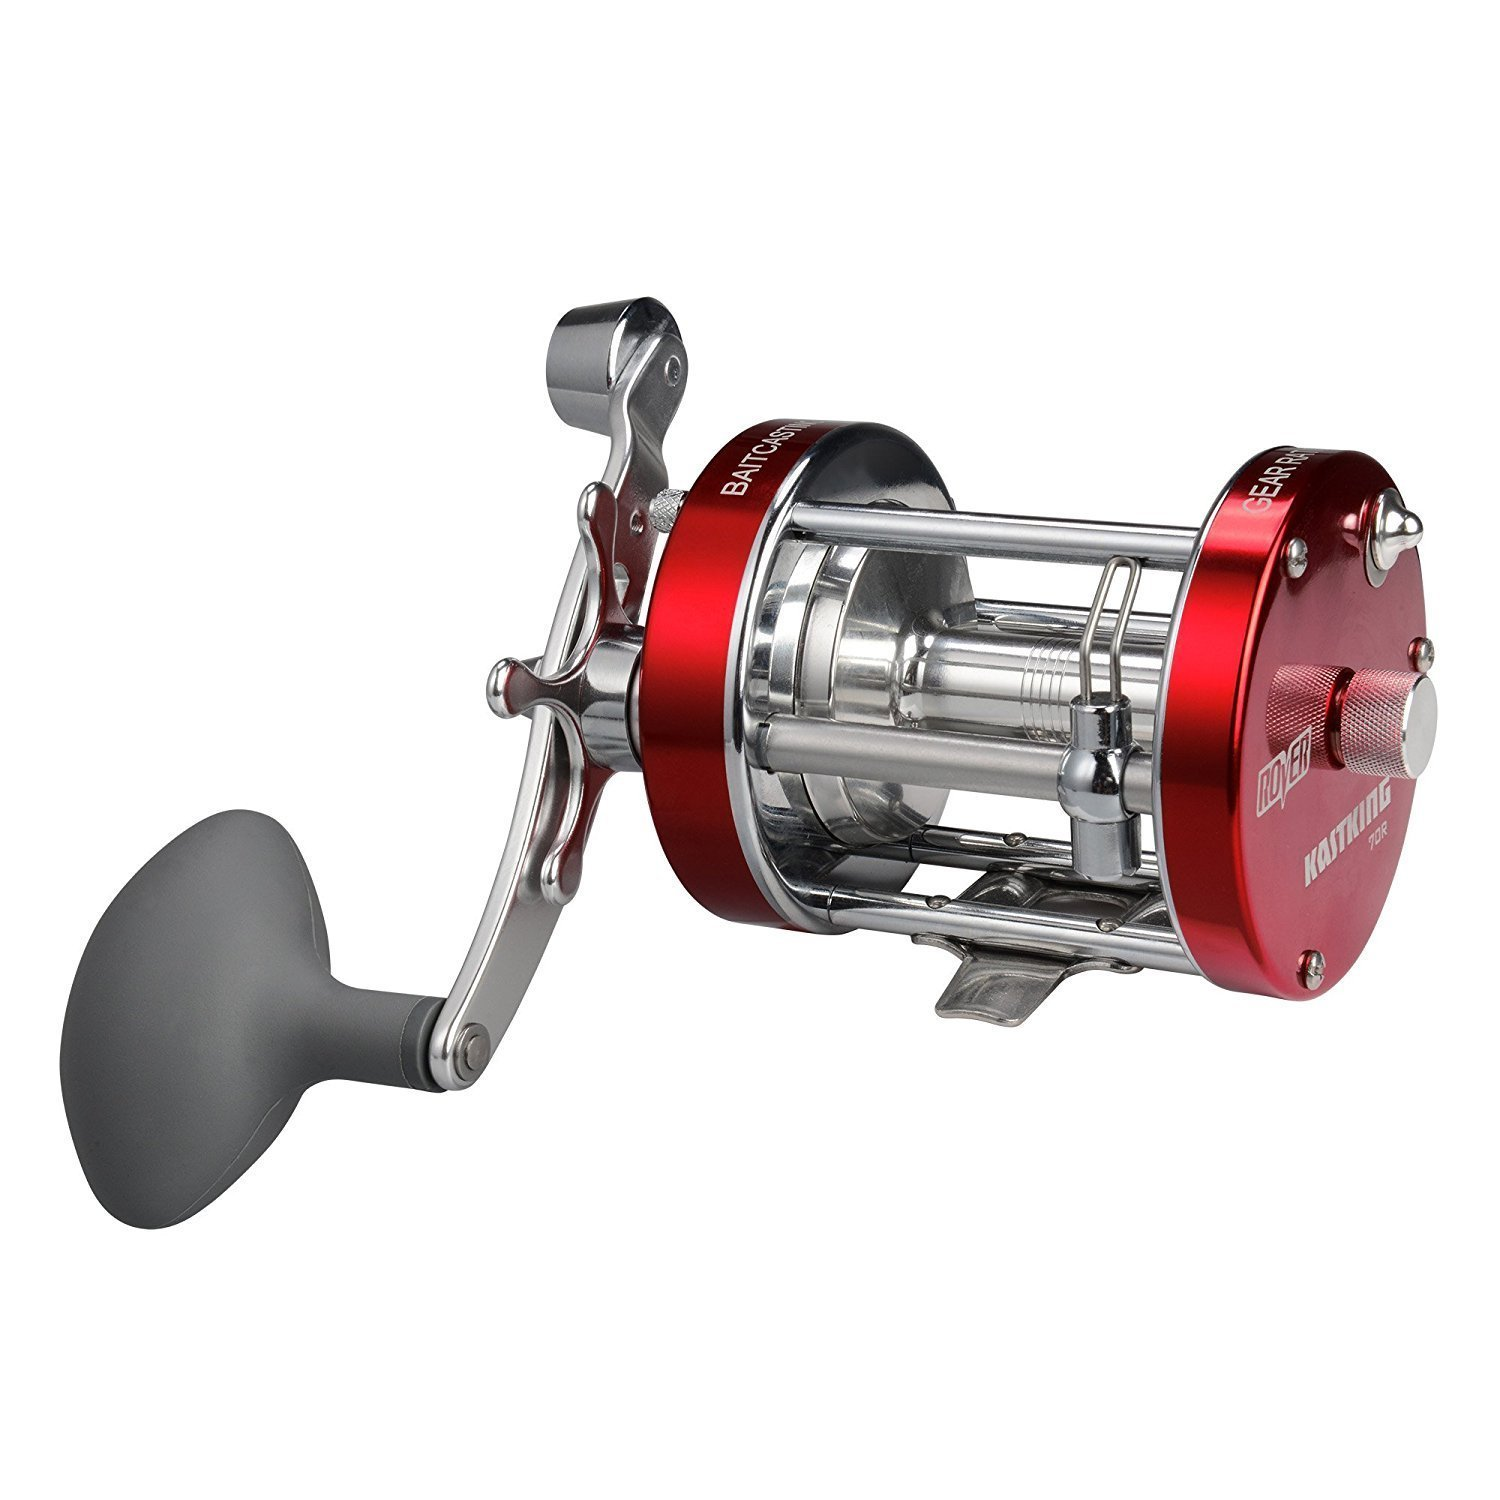 KastKing Rover Round Baitcasting Reel, Right Handed Reel,Rover80 by KastKing (Image #1)